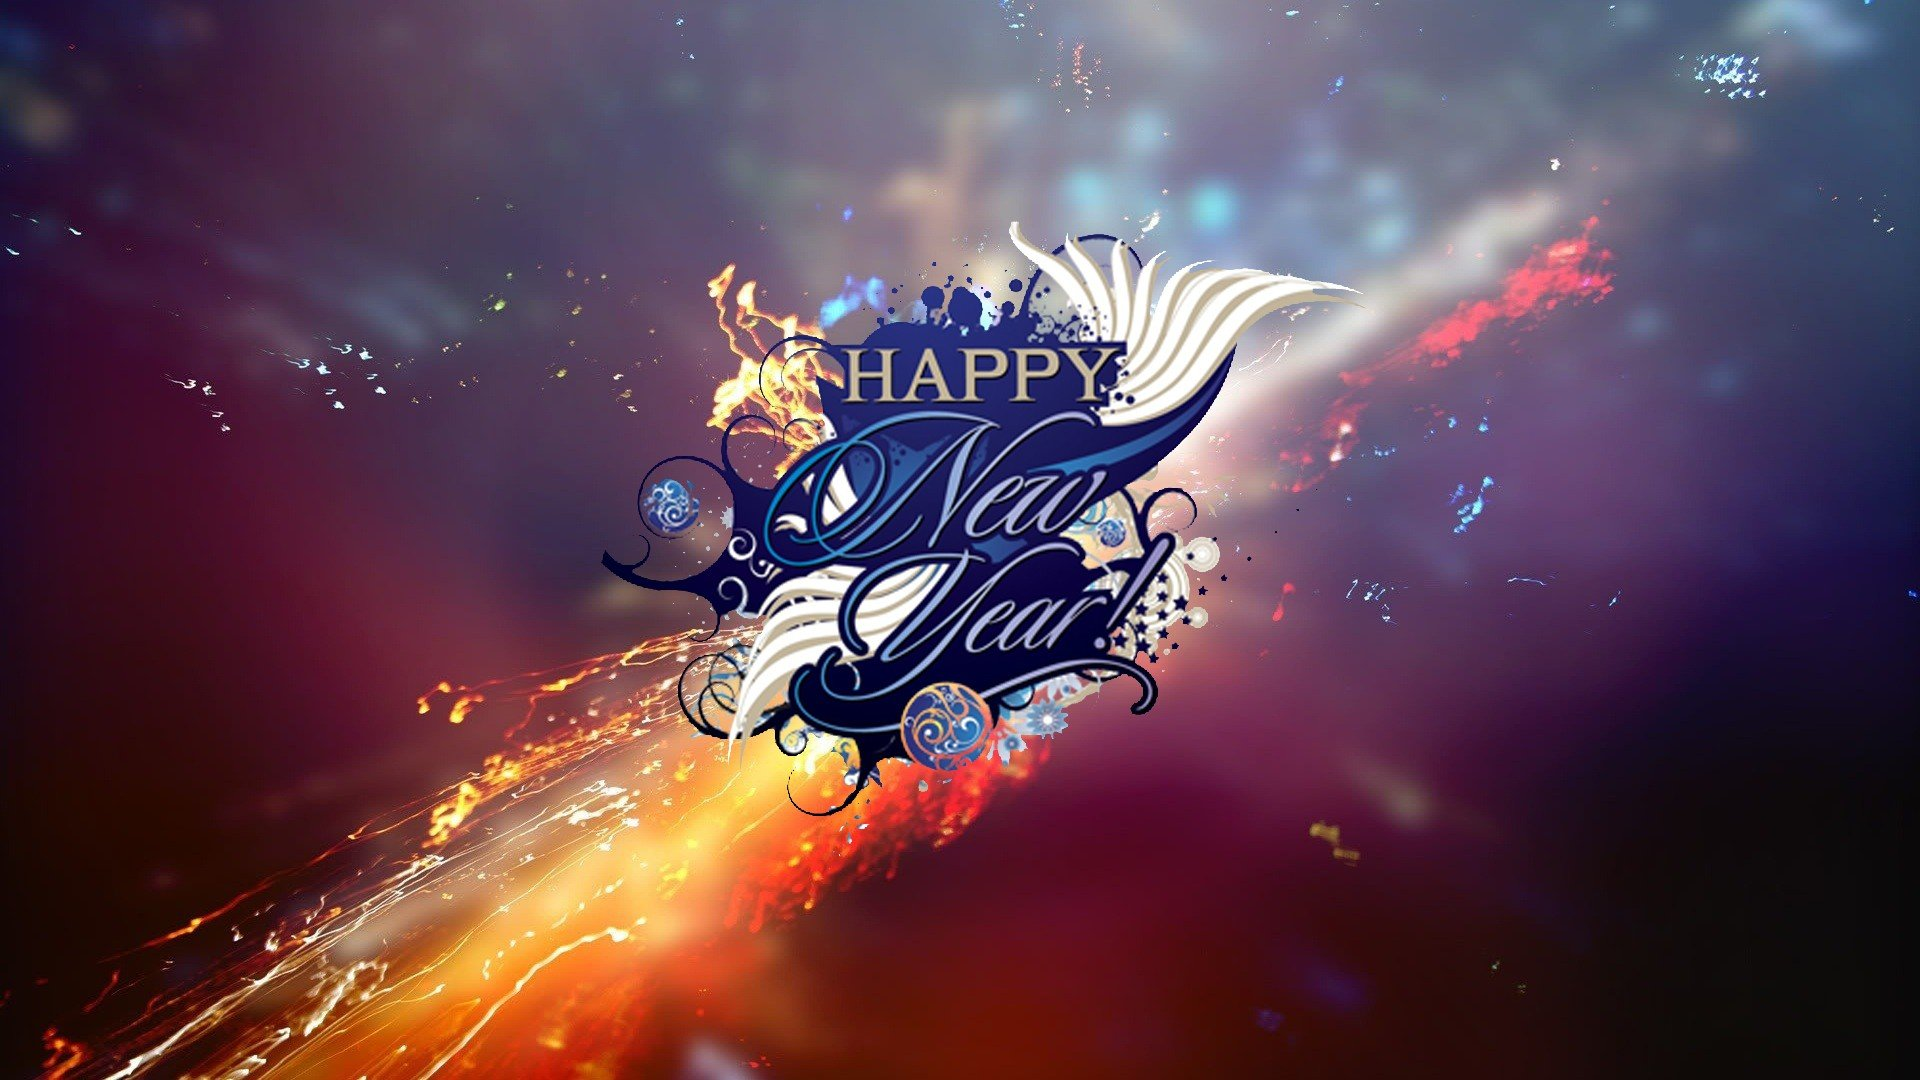 free download new year background id456612 full hd 1080p for desktop